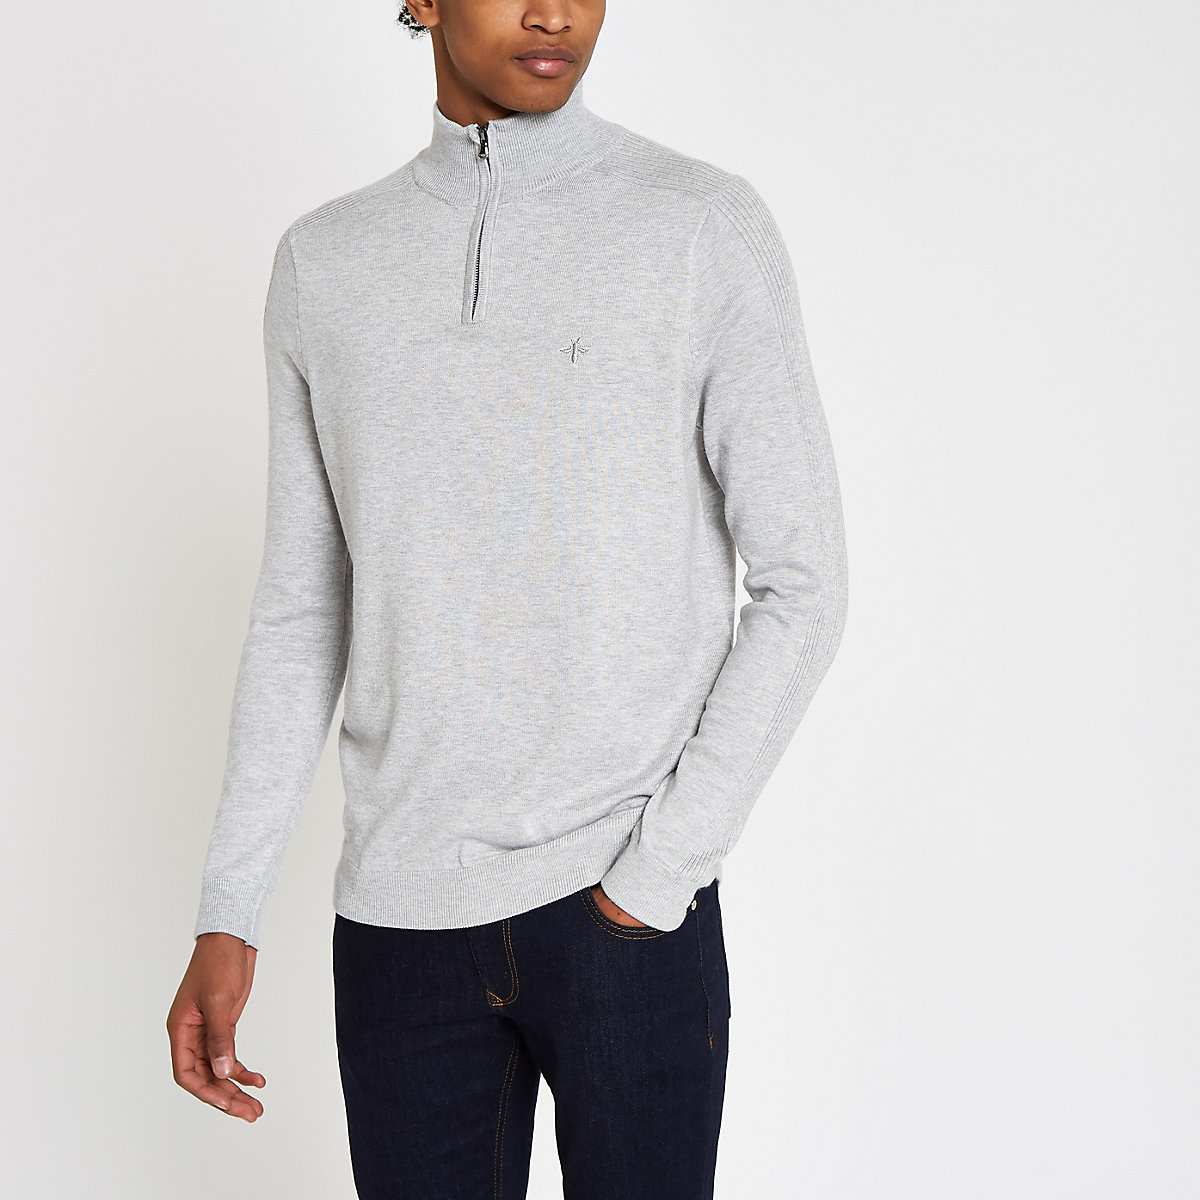 Grey slim fit funnel neck zip up sweater